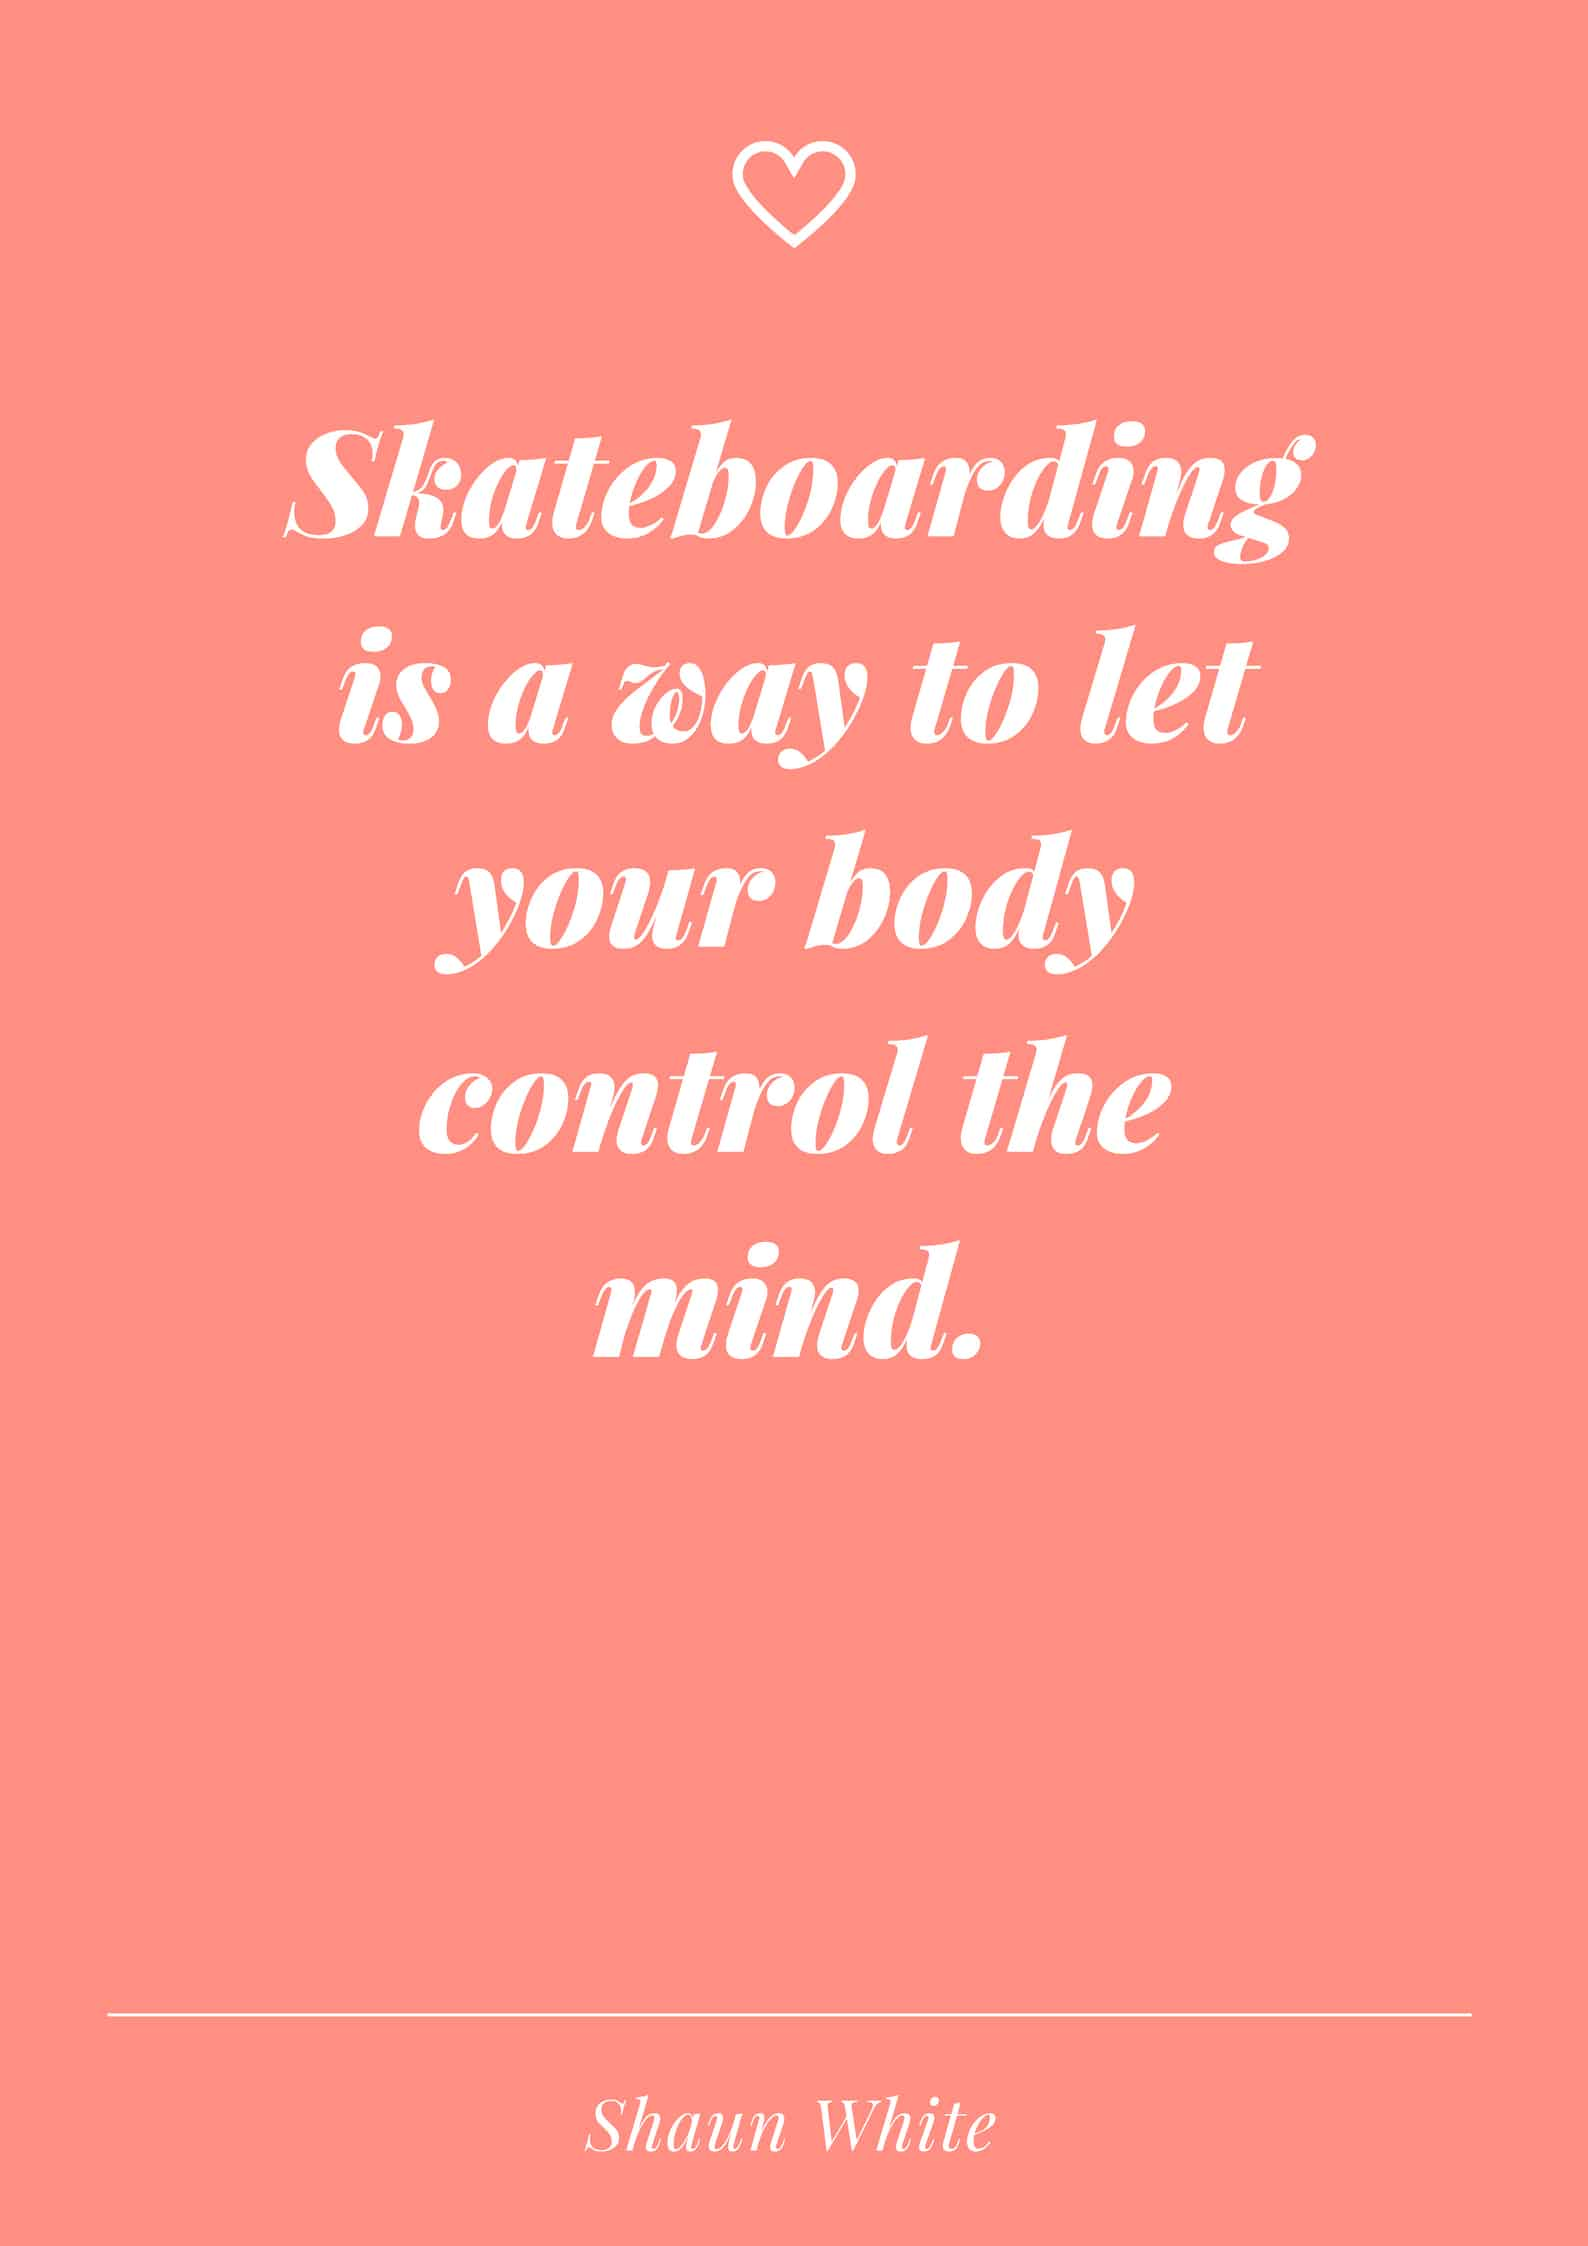 Skateboarding is a way to let your body control the mind.